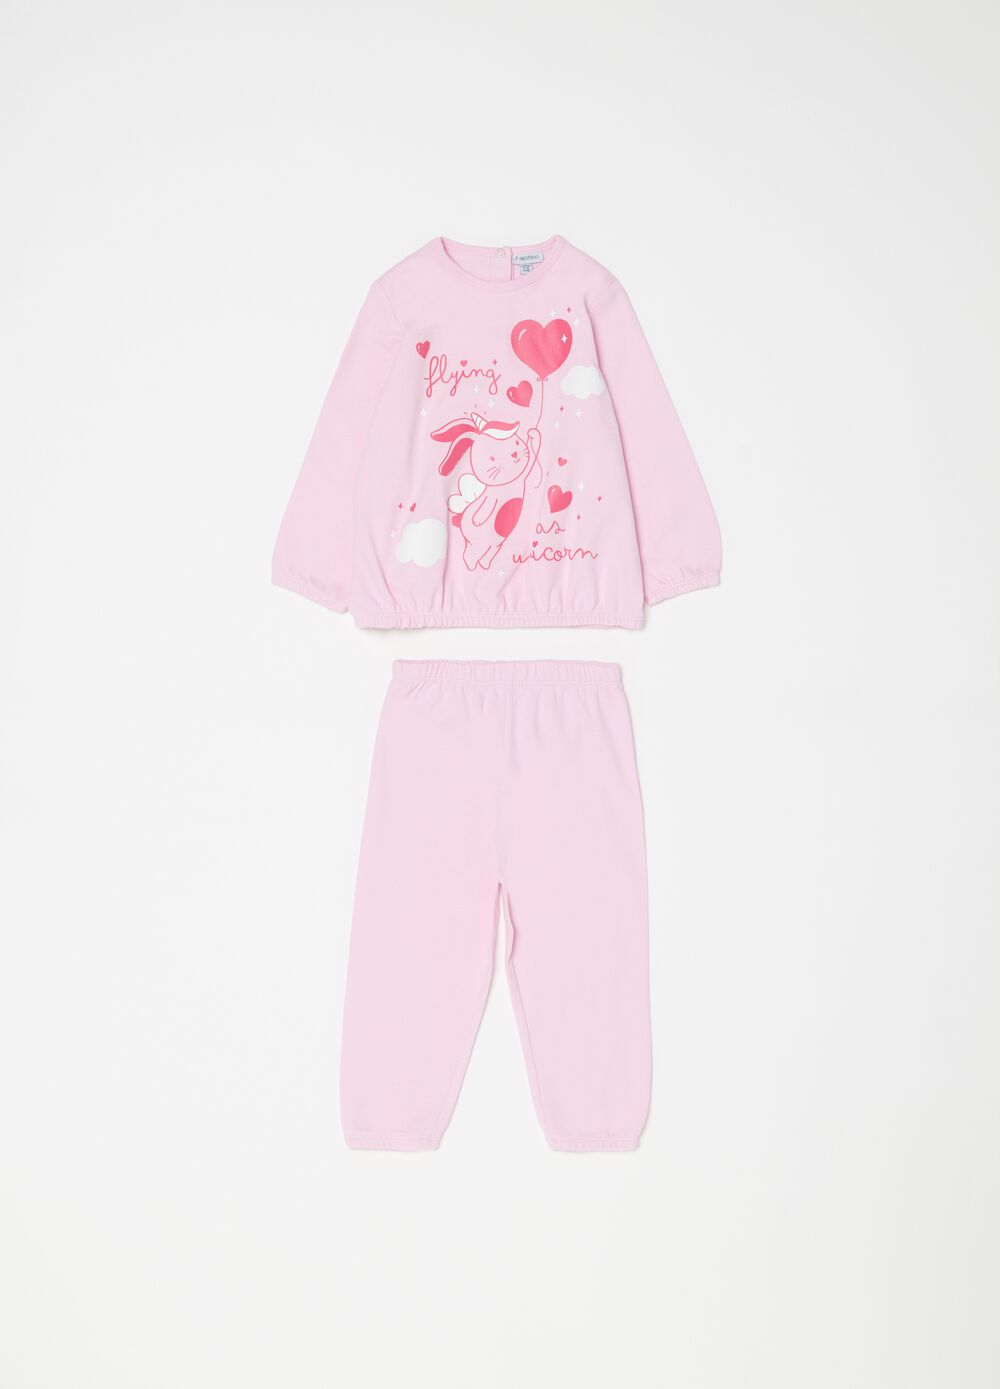 Pyjama top and trousers with rabbit print